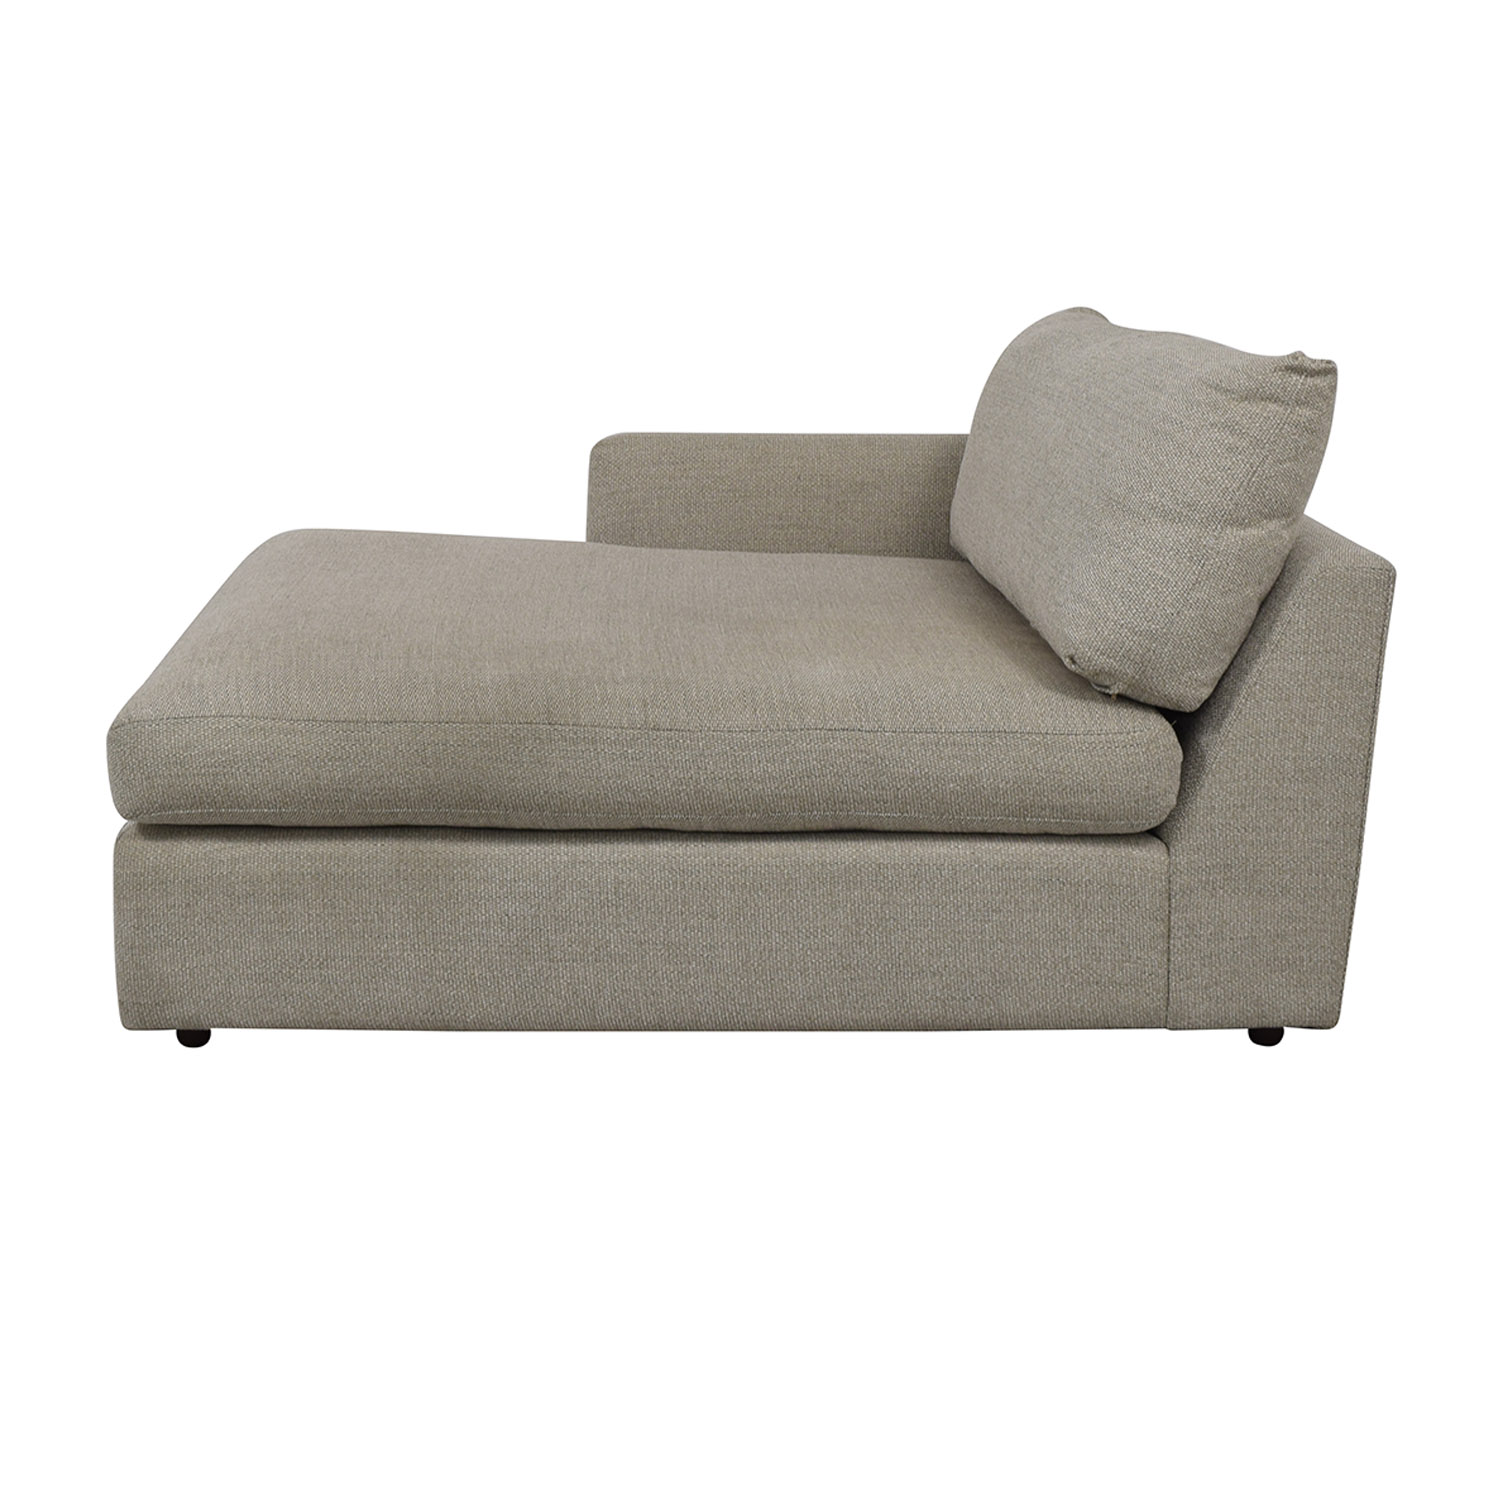 Crate & Barrel Lounge II Left Arm Chaise / Sofas